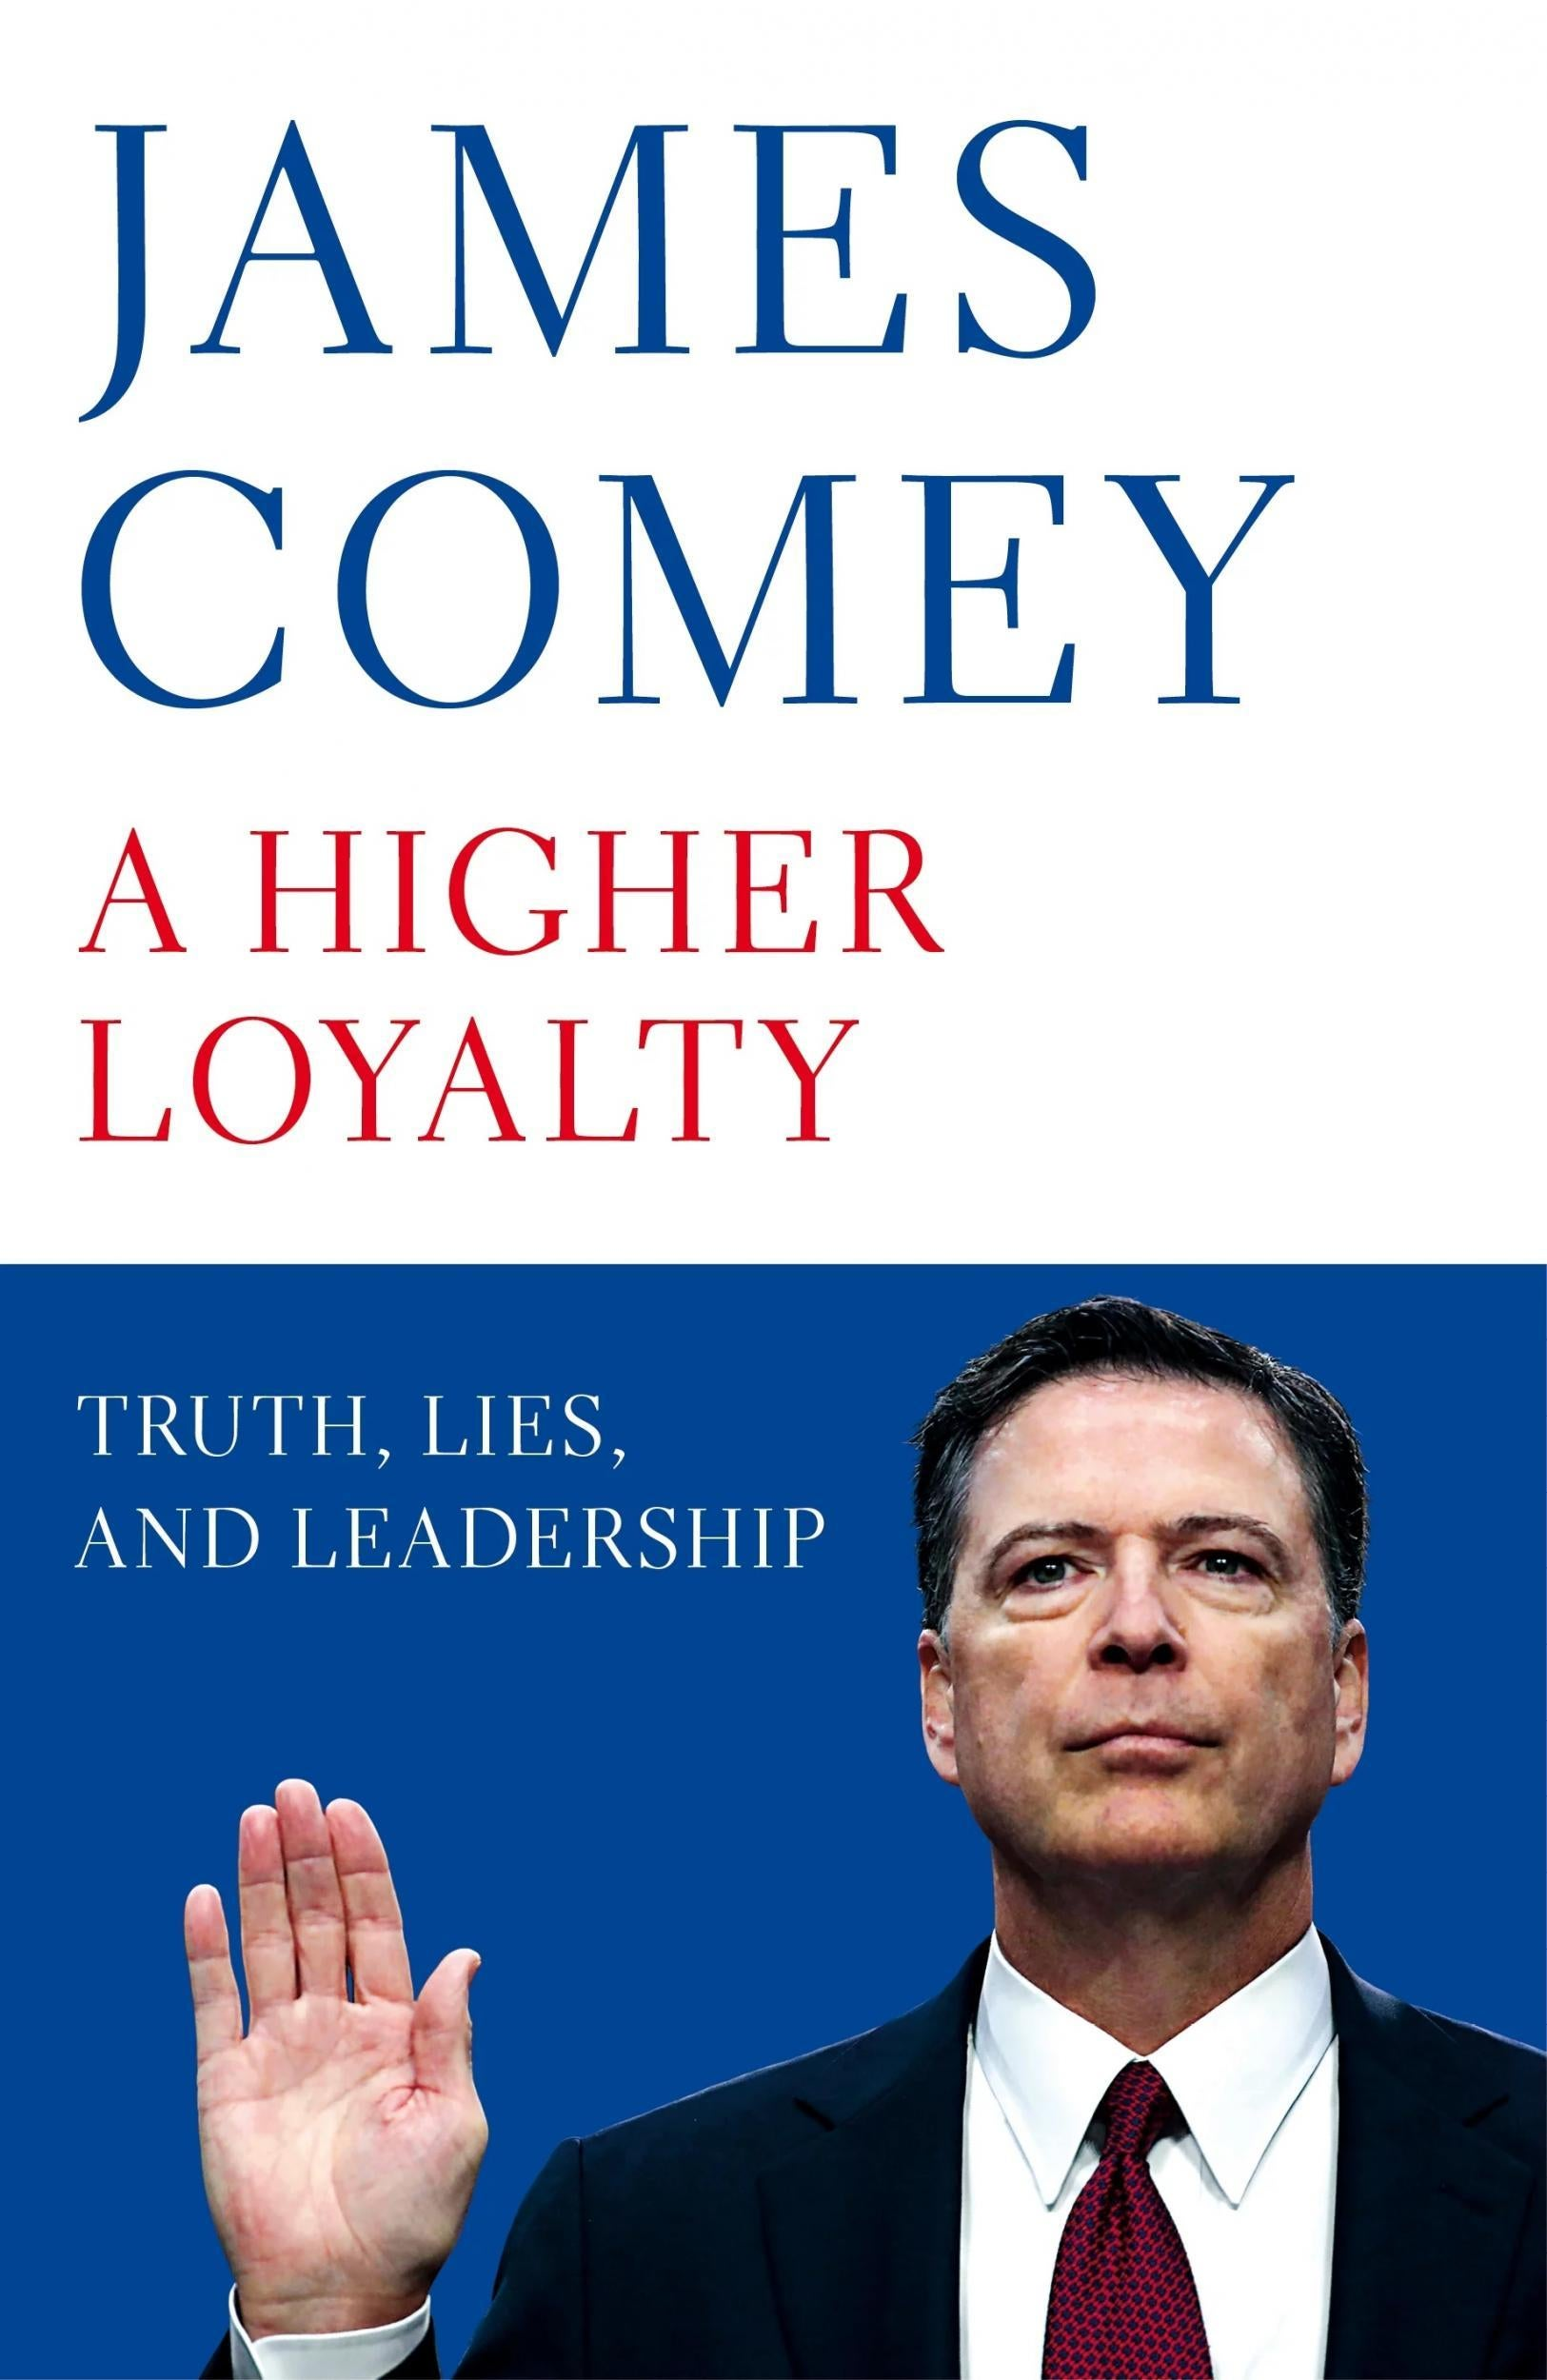 A Higher Loyalty by James Comey review